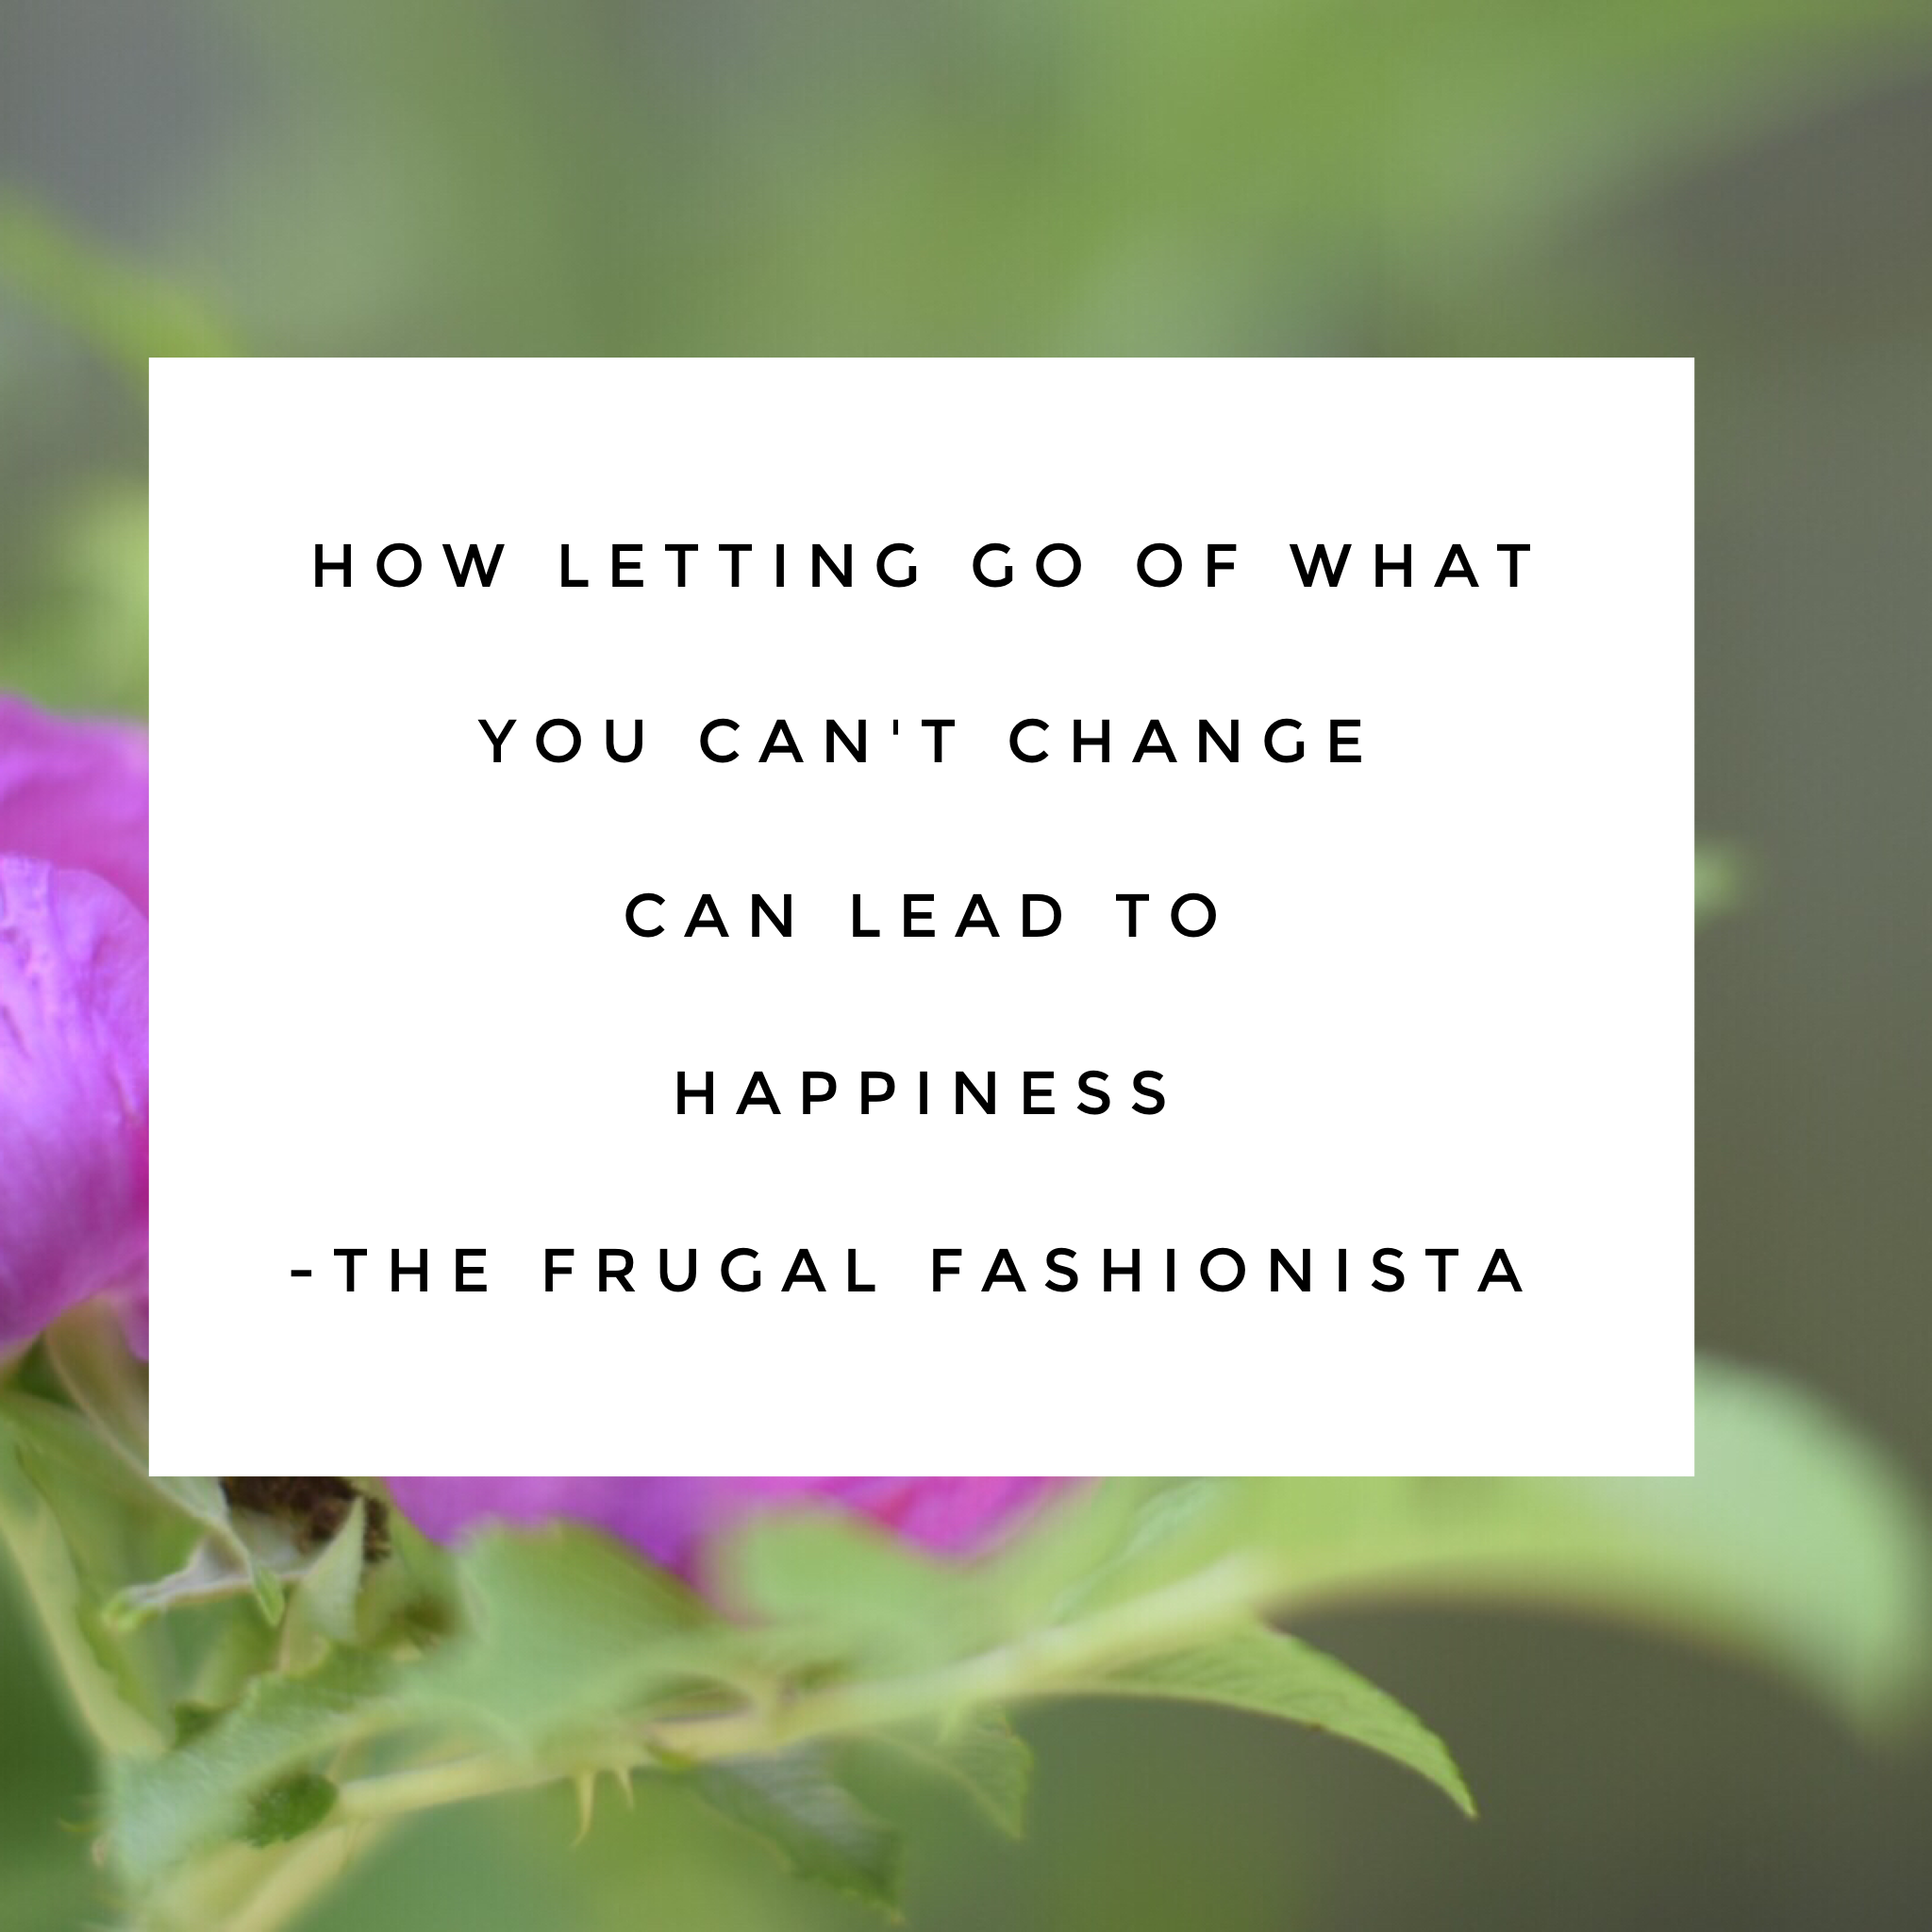 The Frugal Fashionista: How Letting Go of What You Cannot Change Can Lead to Happiness